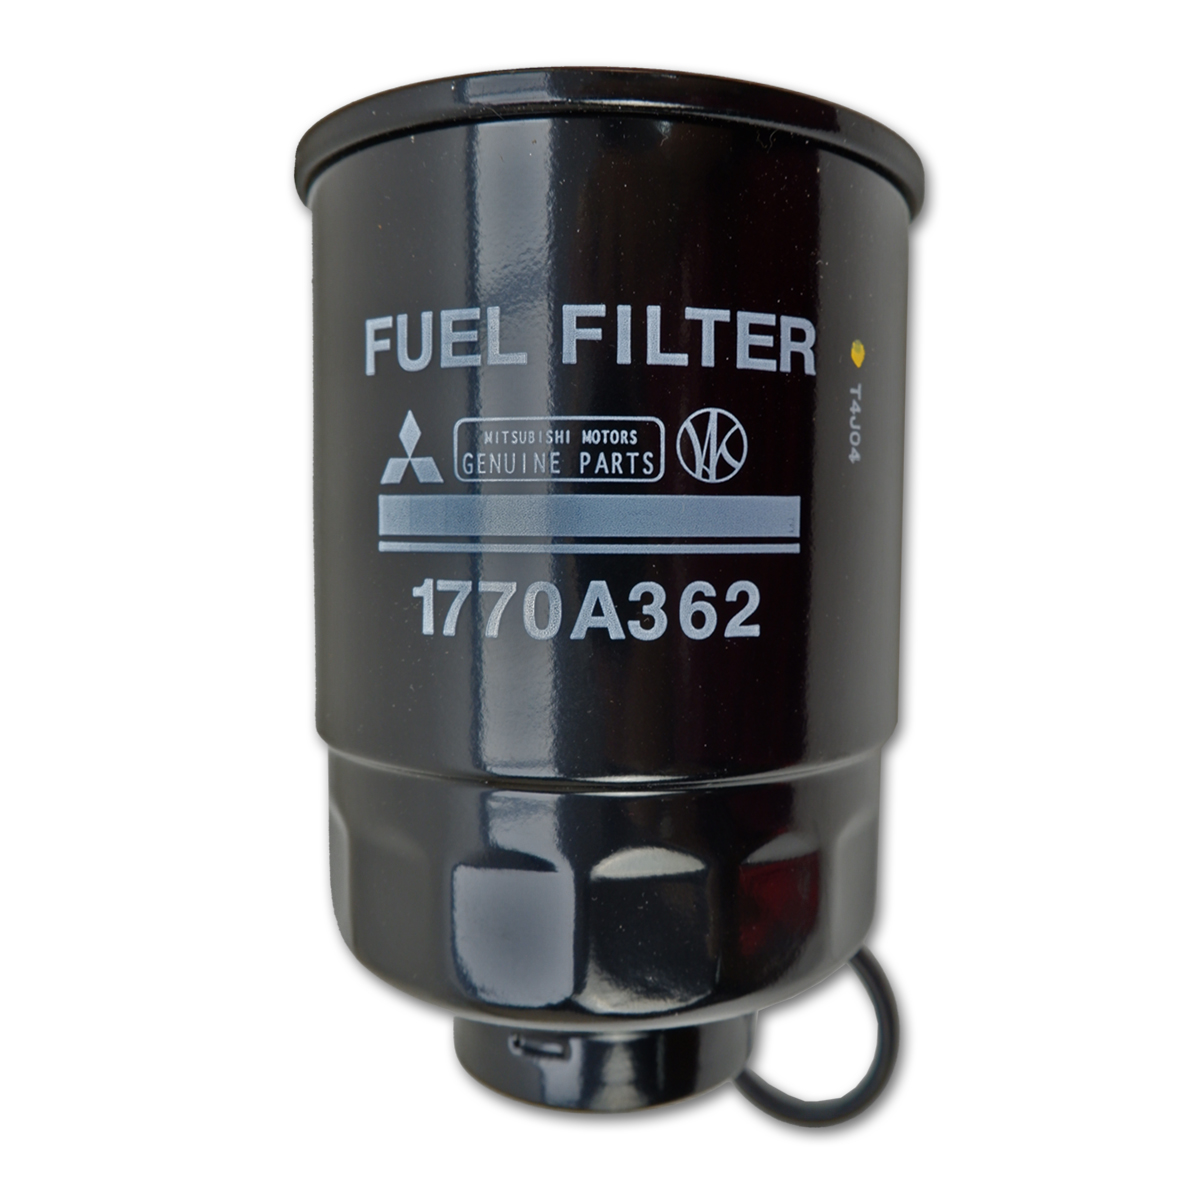 fuel filter black genuine for mitsubishi l200 strada 2.8 diesel 1996 - 2005  | ebay  ebay